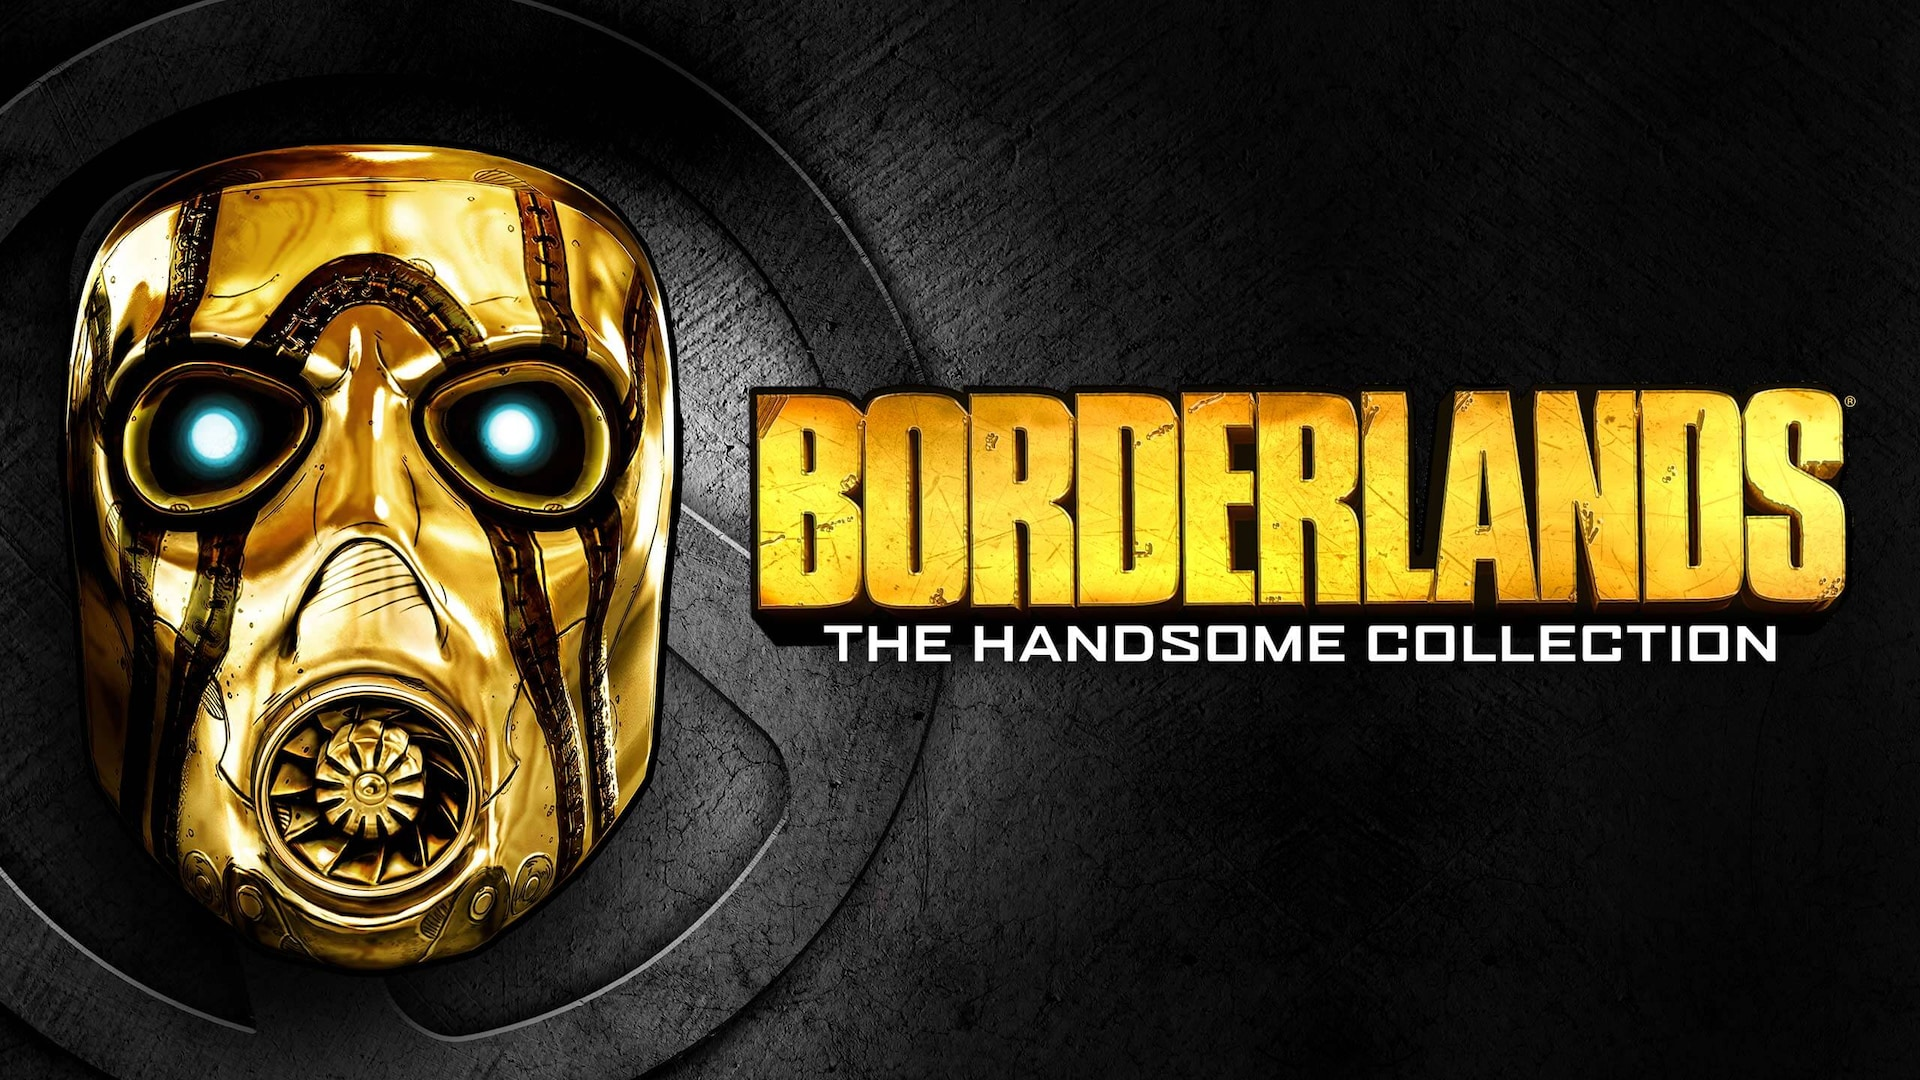 Diesel%2Fbundles%2Fborderlands-the-handsome-collection%2FEGS_BorderlandsTheHandsomeCollection_GearboxSoftware_S1-2560x1440-6a050f8fb6779371abd58ecbbb6a1e62c8520dc2.jpg?h=1080&resize=1&w=1920